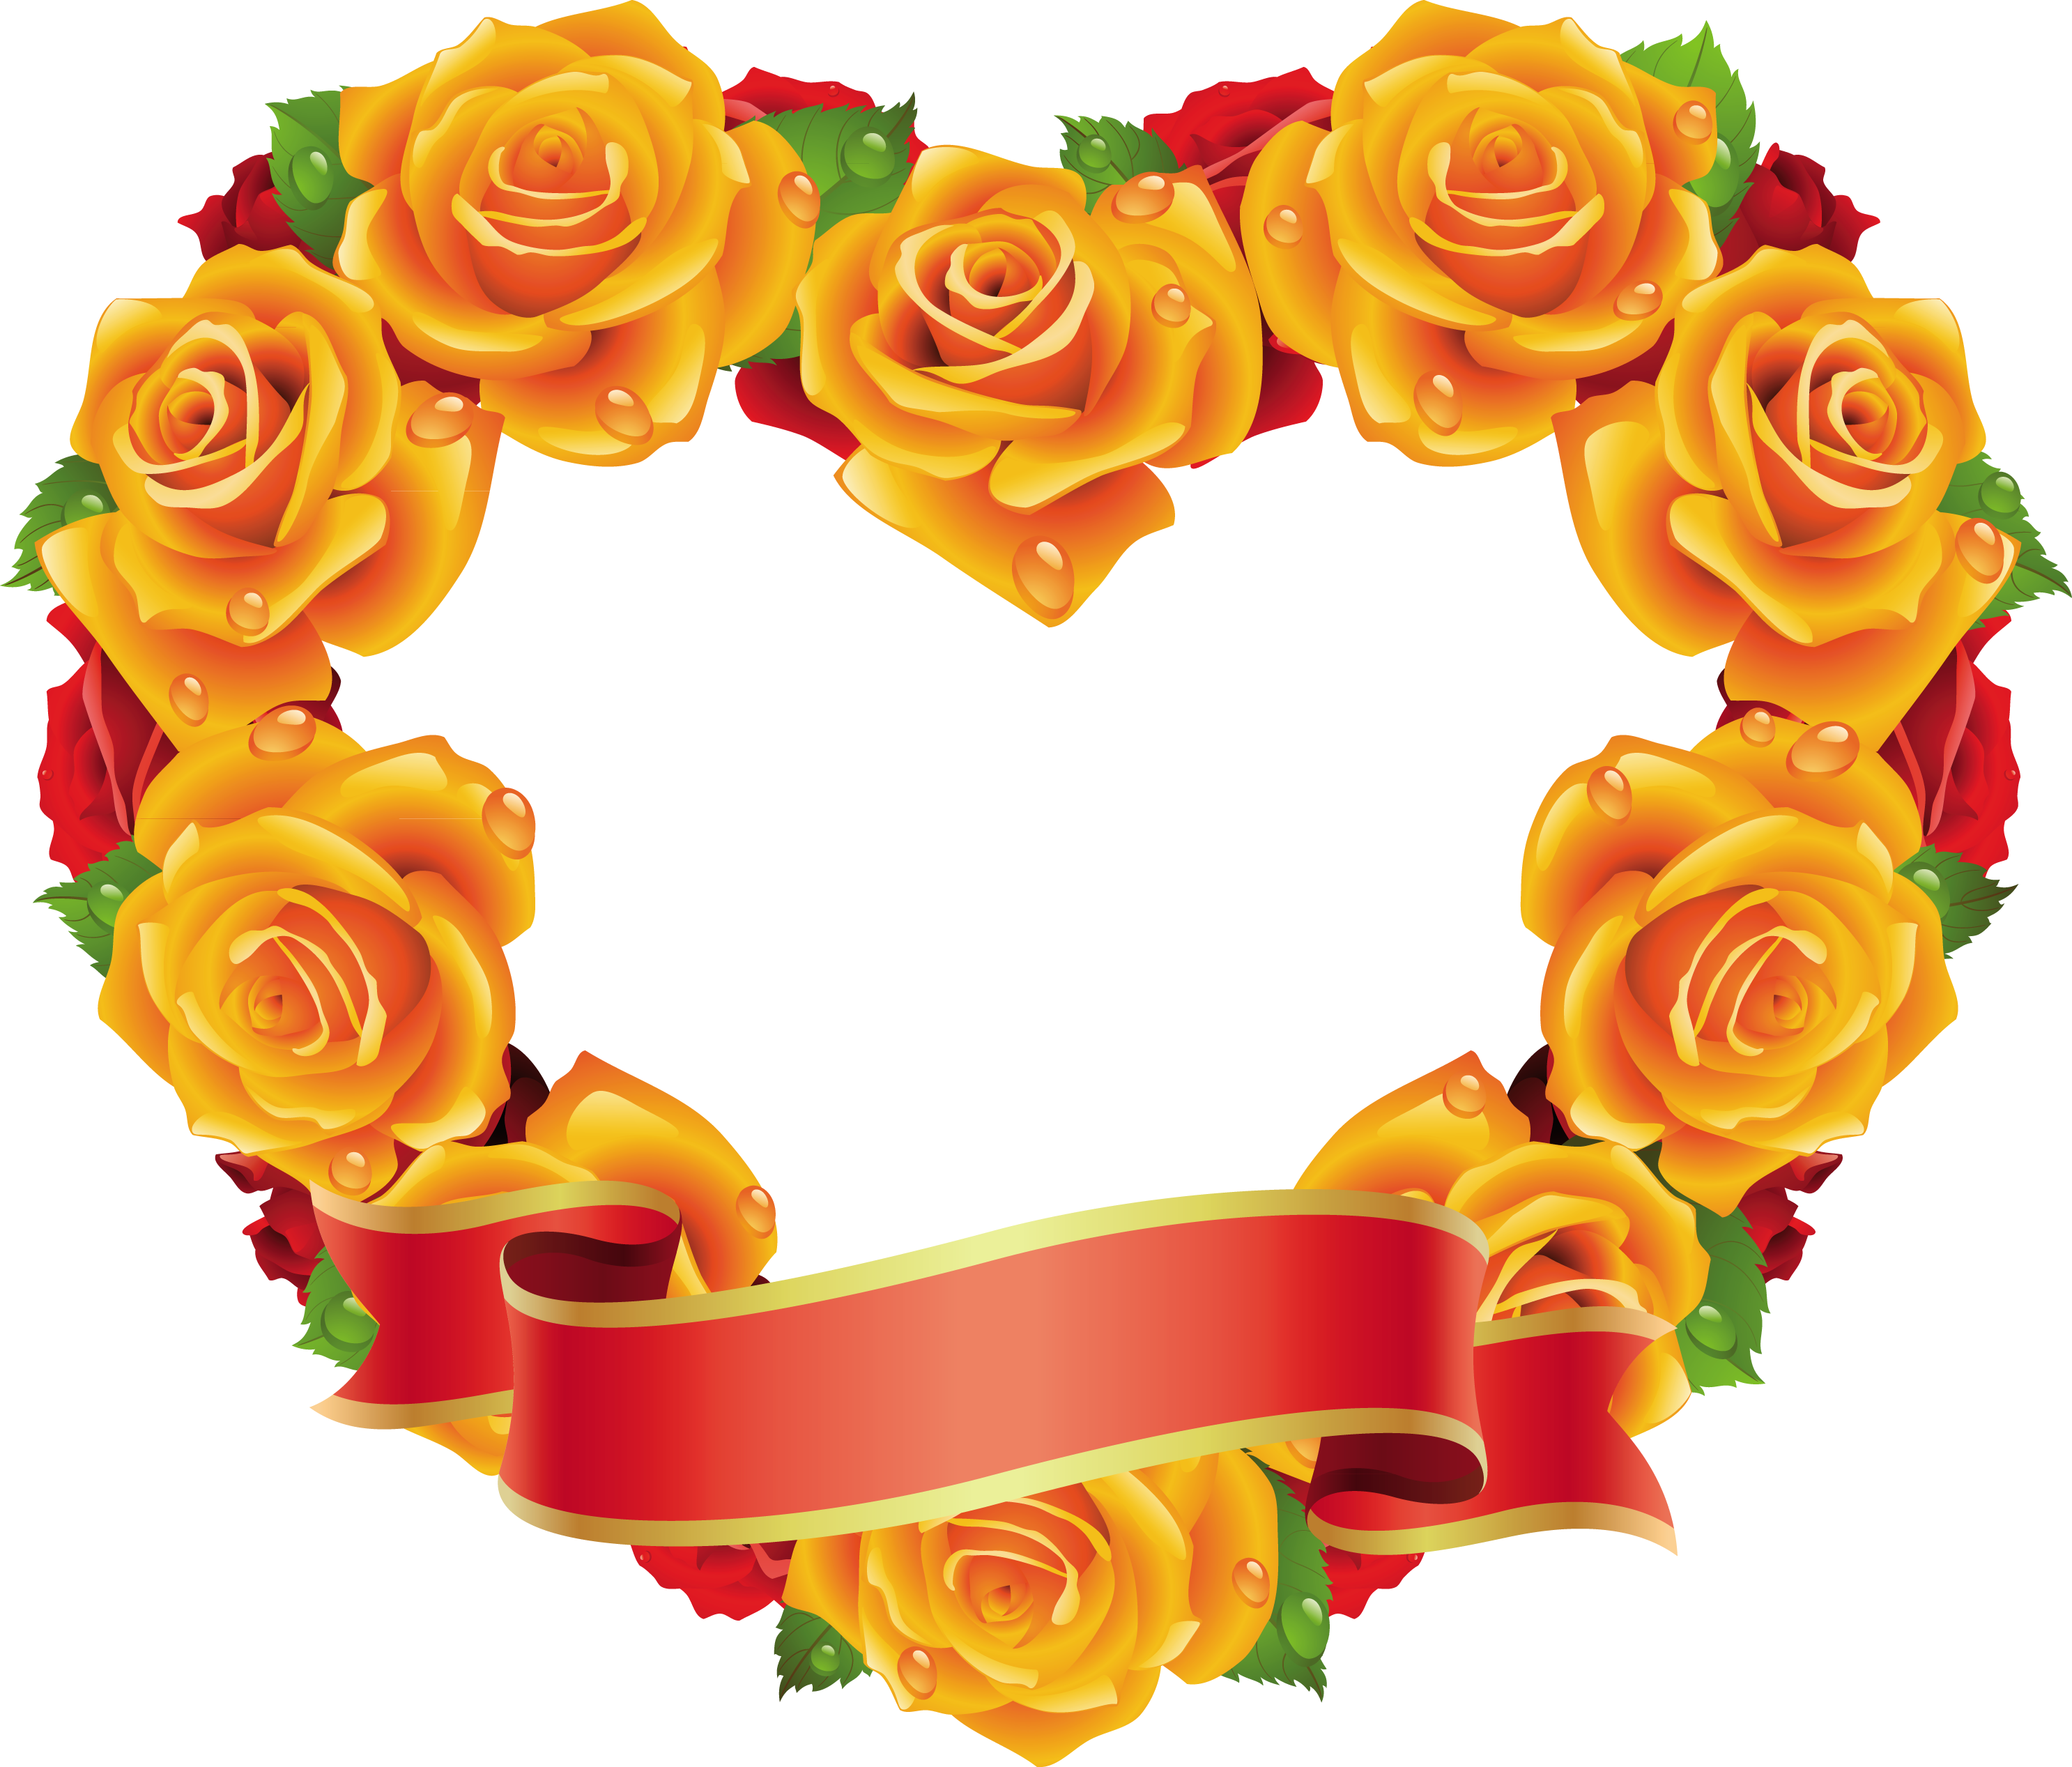 Clipart roses shape. Yellow and red heart